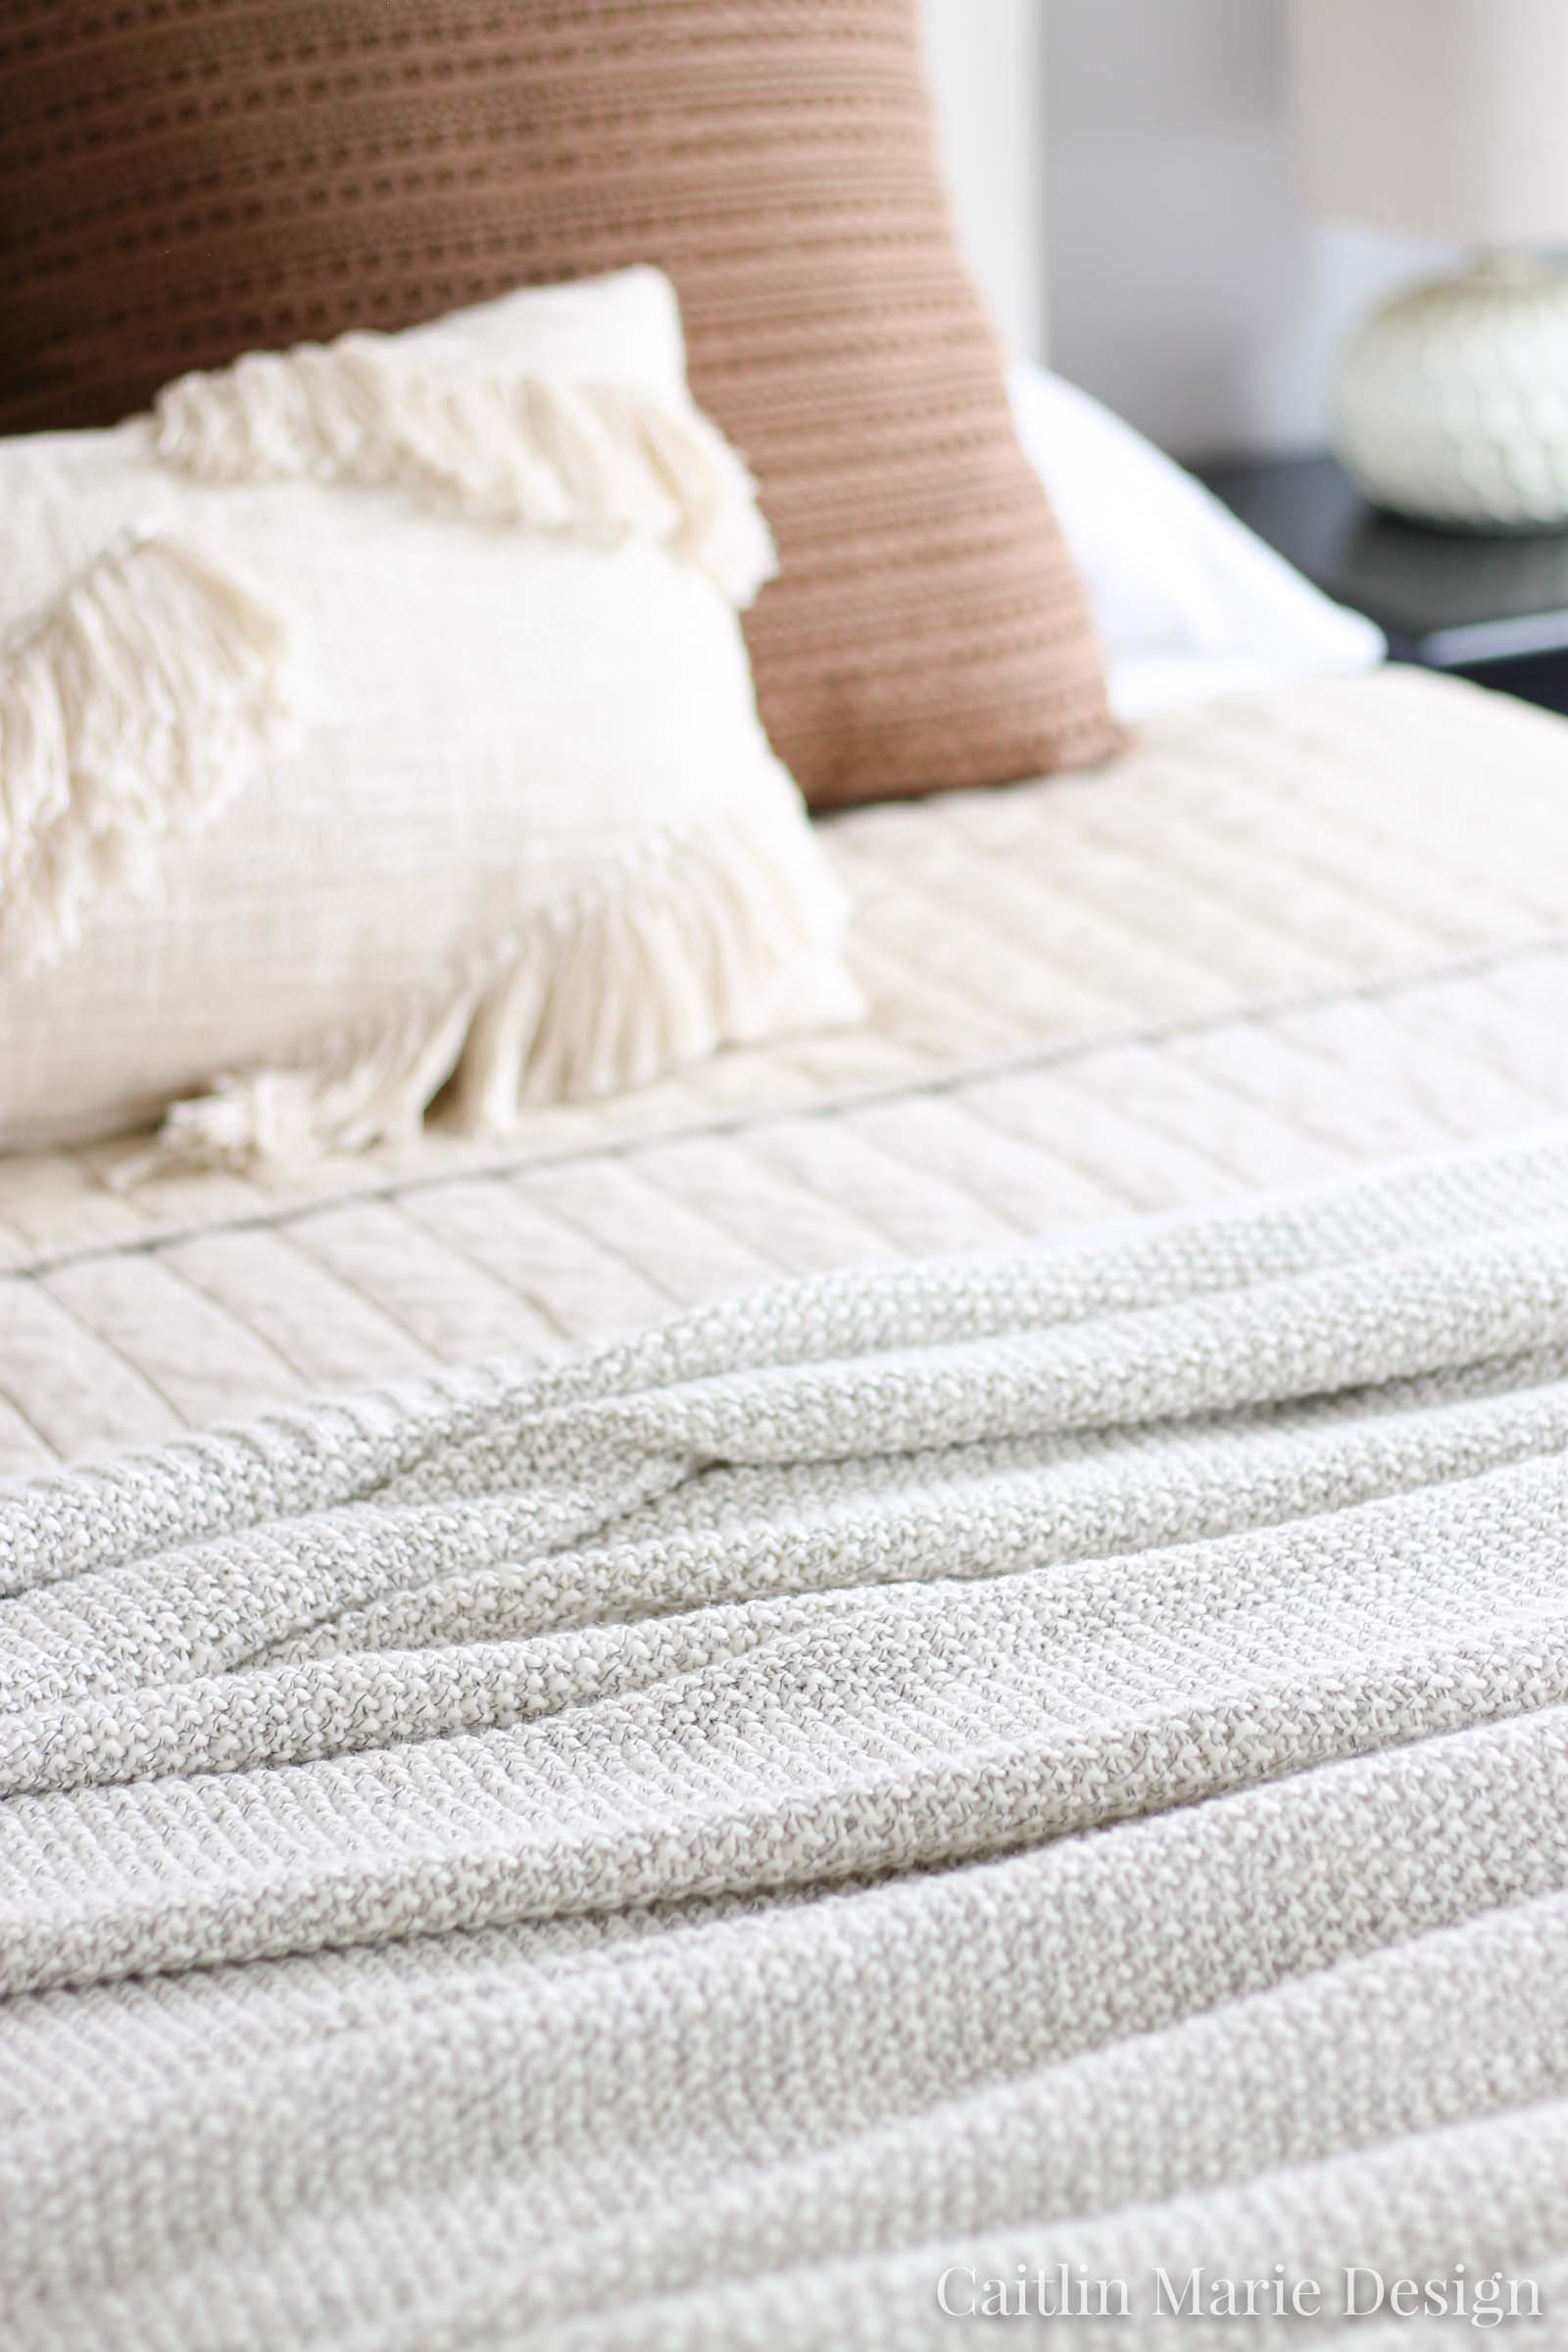 How to Layer Bedding - Caitlin Marie Design | modern traditional, minimalist home, natural decor, linen quilt, sweater throw